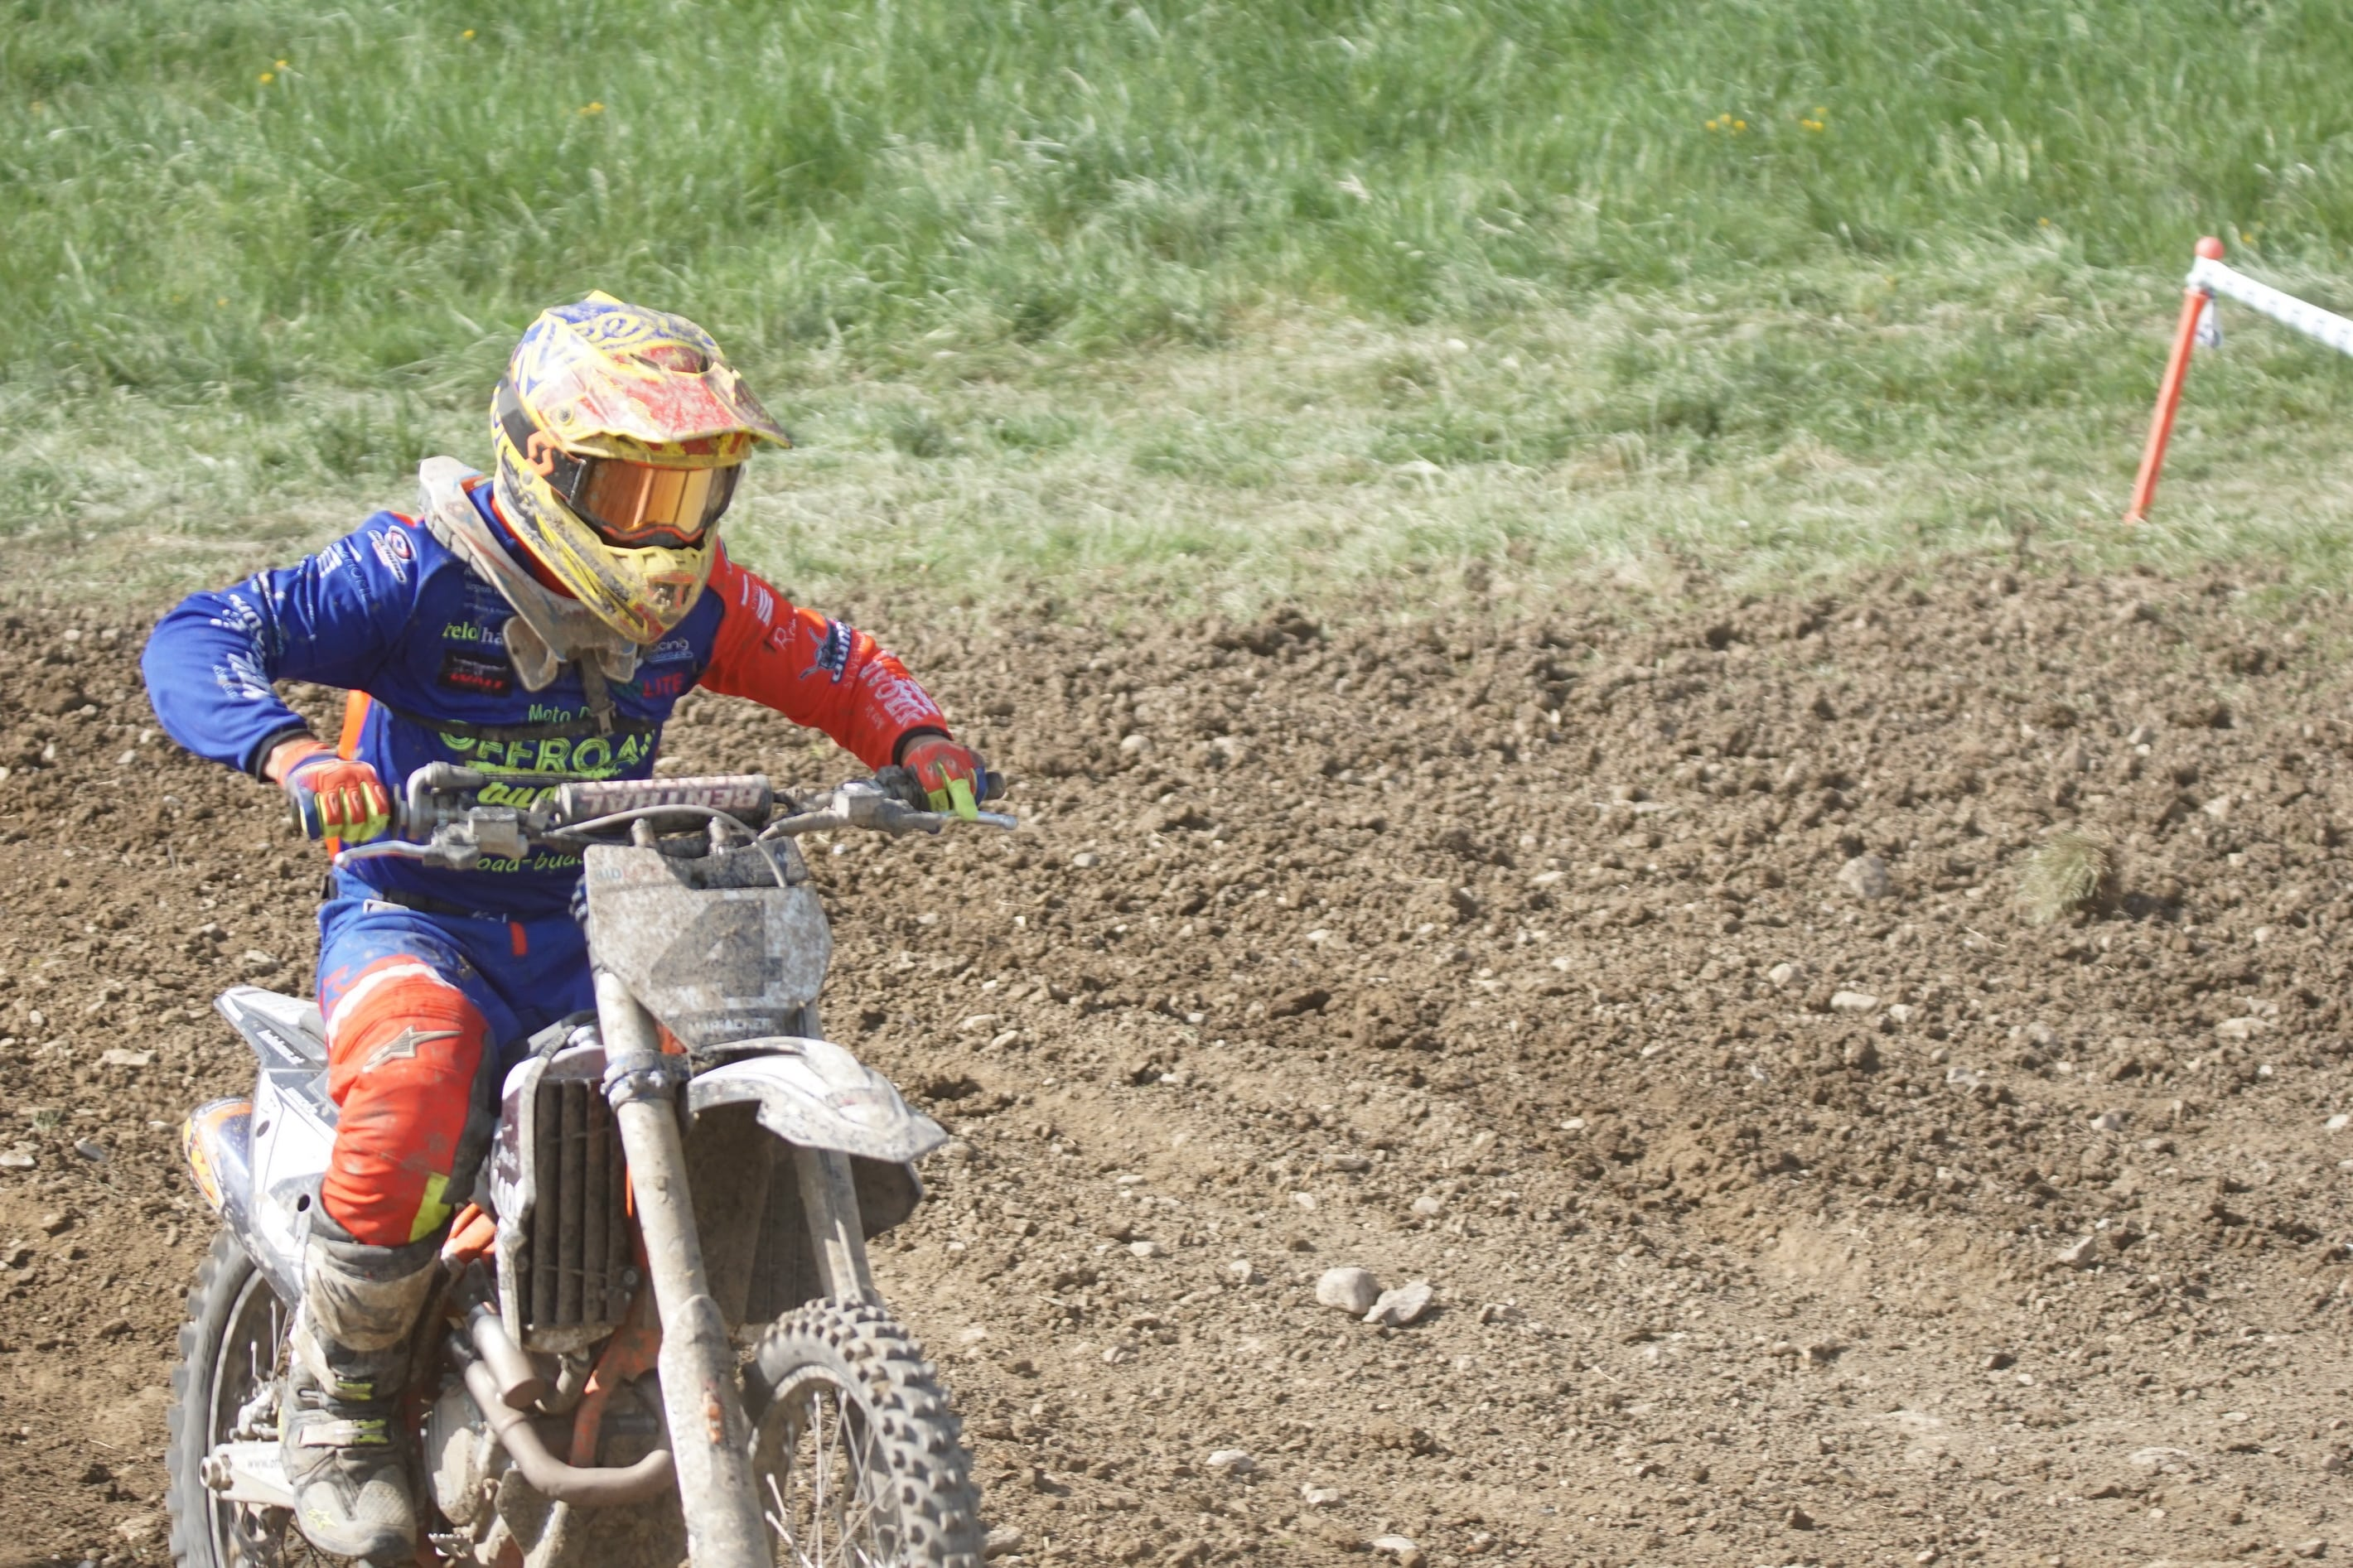 DSC 905_Moto Cross Sittendorf Teil1 am 29.04.2018